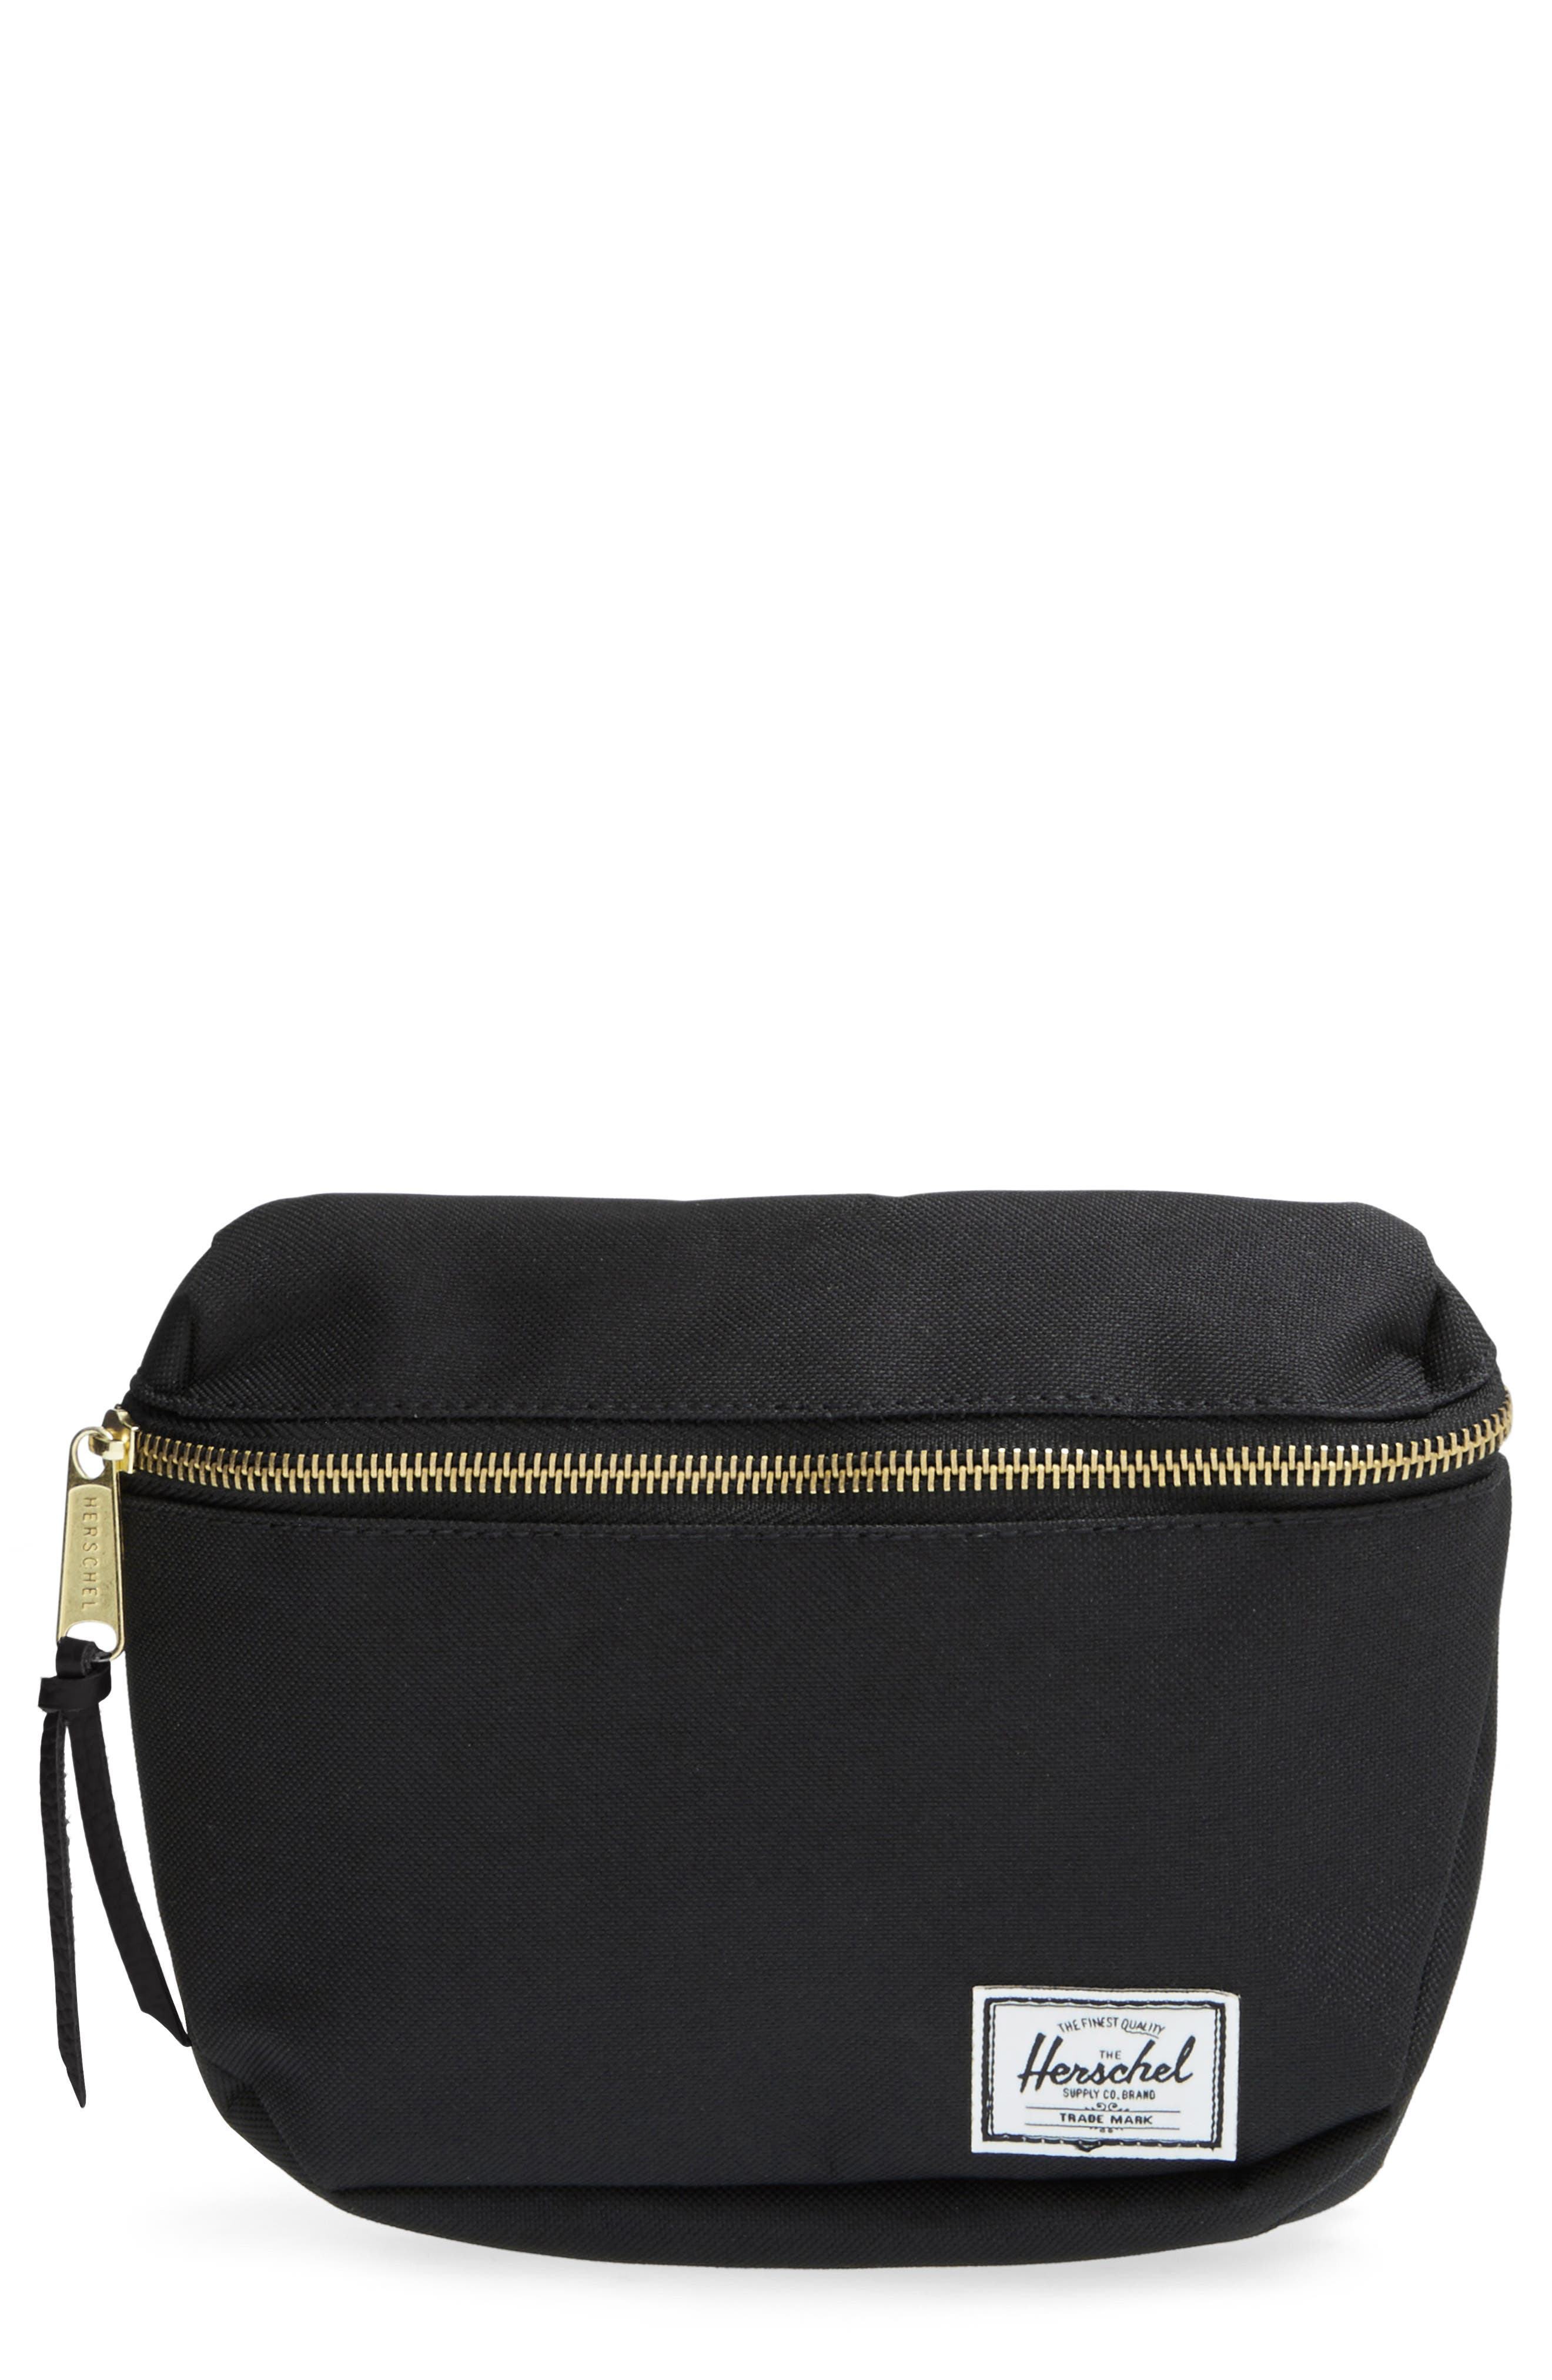 Fifteen Belt Bag,                         Main,                         color, BLACK